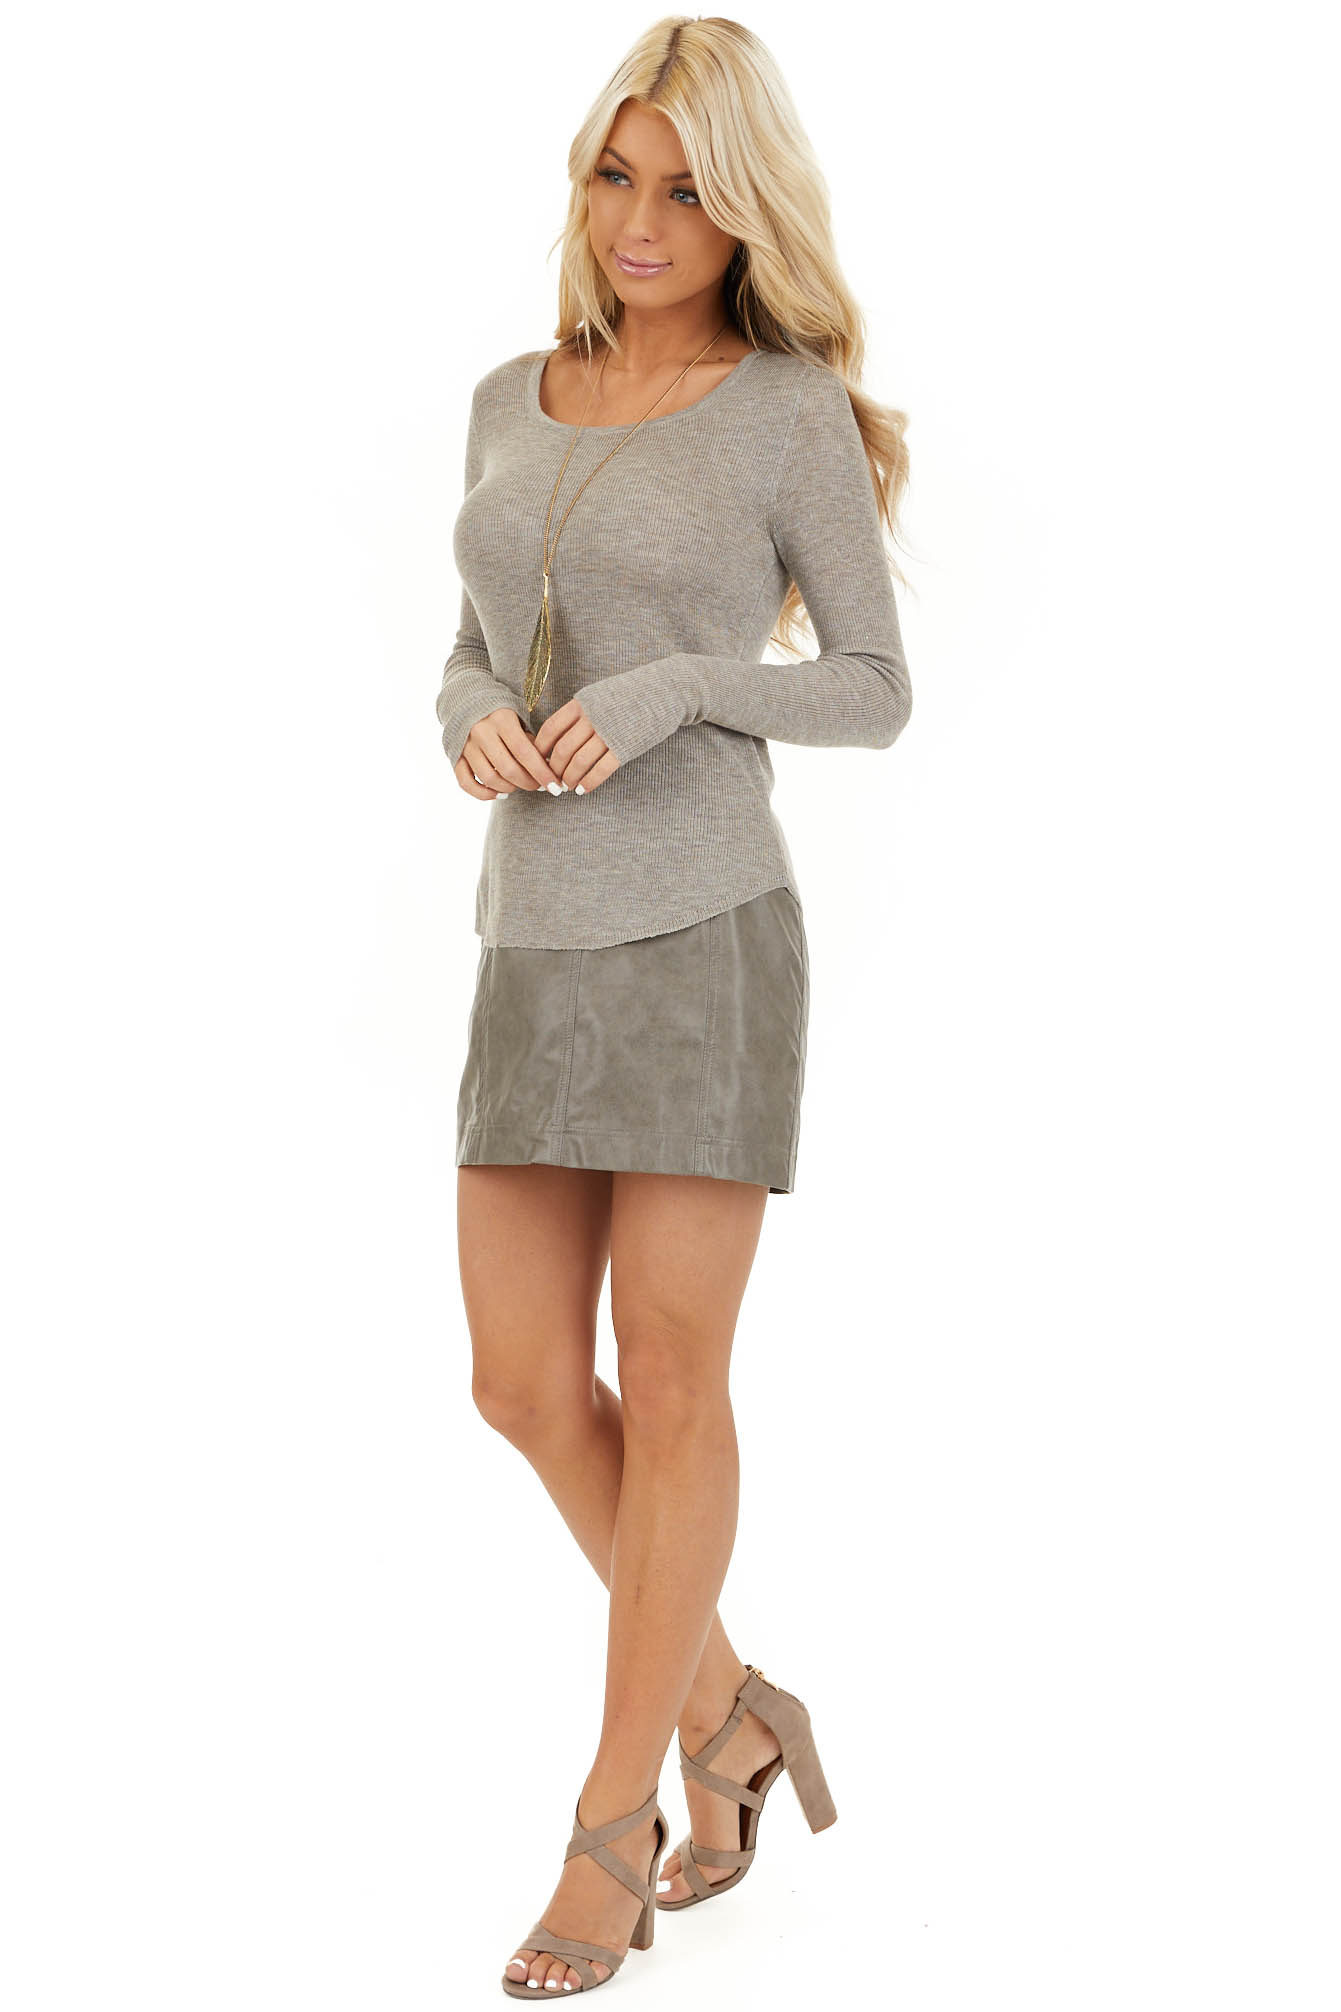 Taupe Faux Leather Fitted Mini Skirt with Zip Up Closure side full body